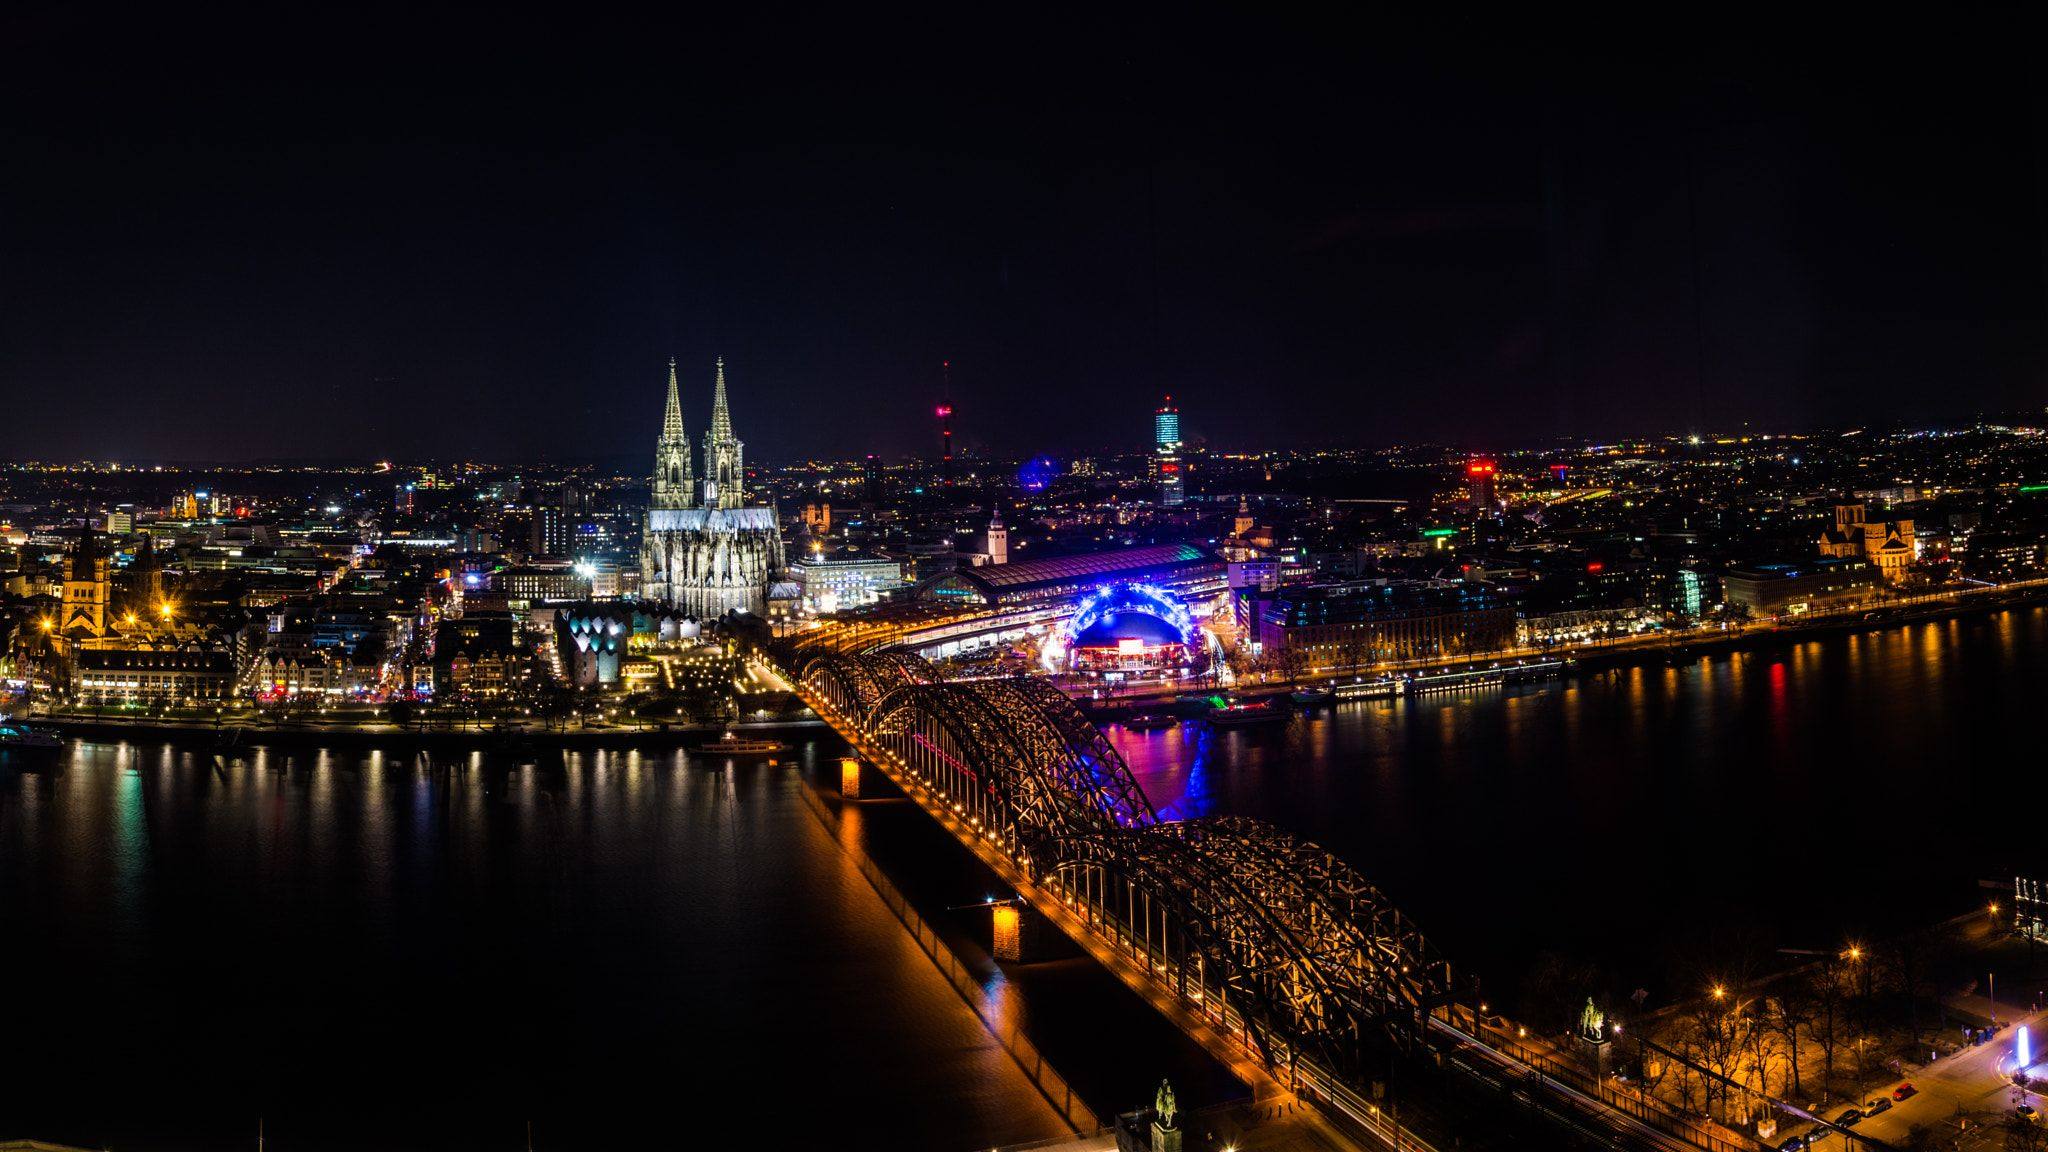 Perroni fotos cologne germany at night women riding